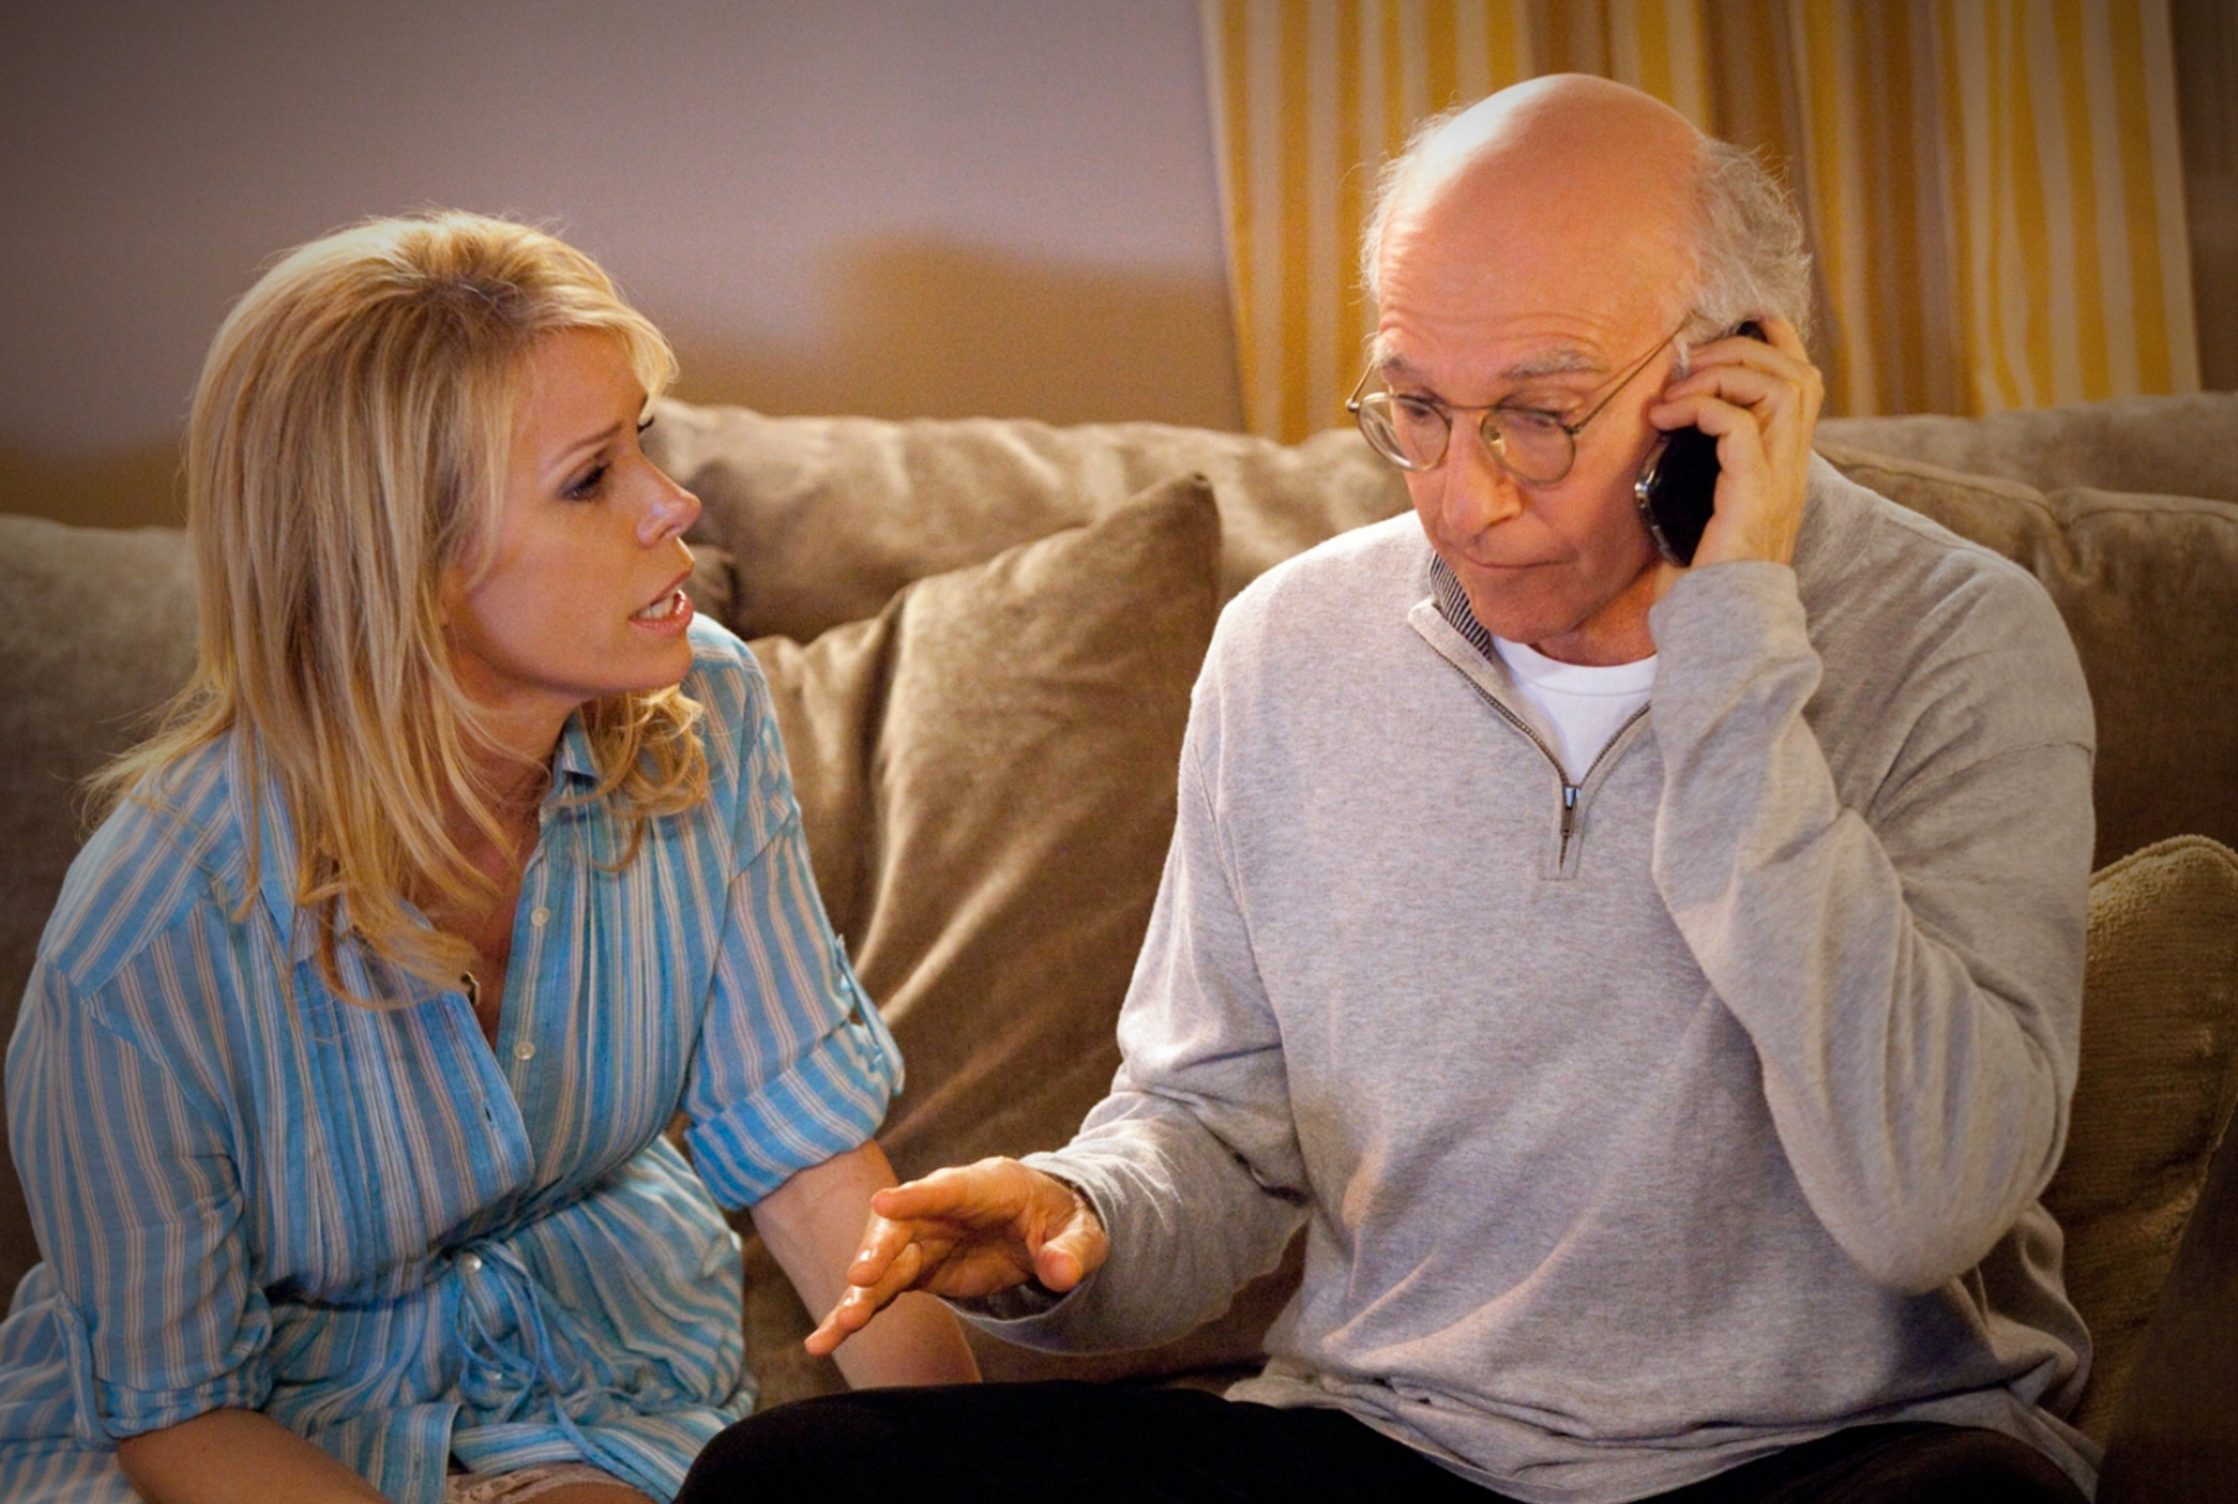 The 10 Most Cringeworthy Moments on Curb Your Enthusiasm